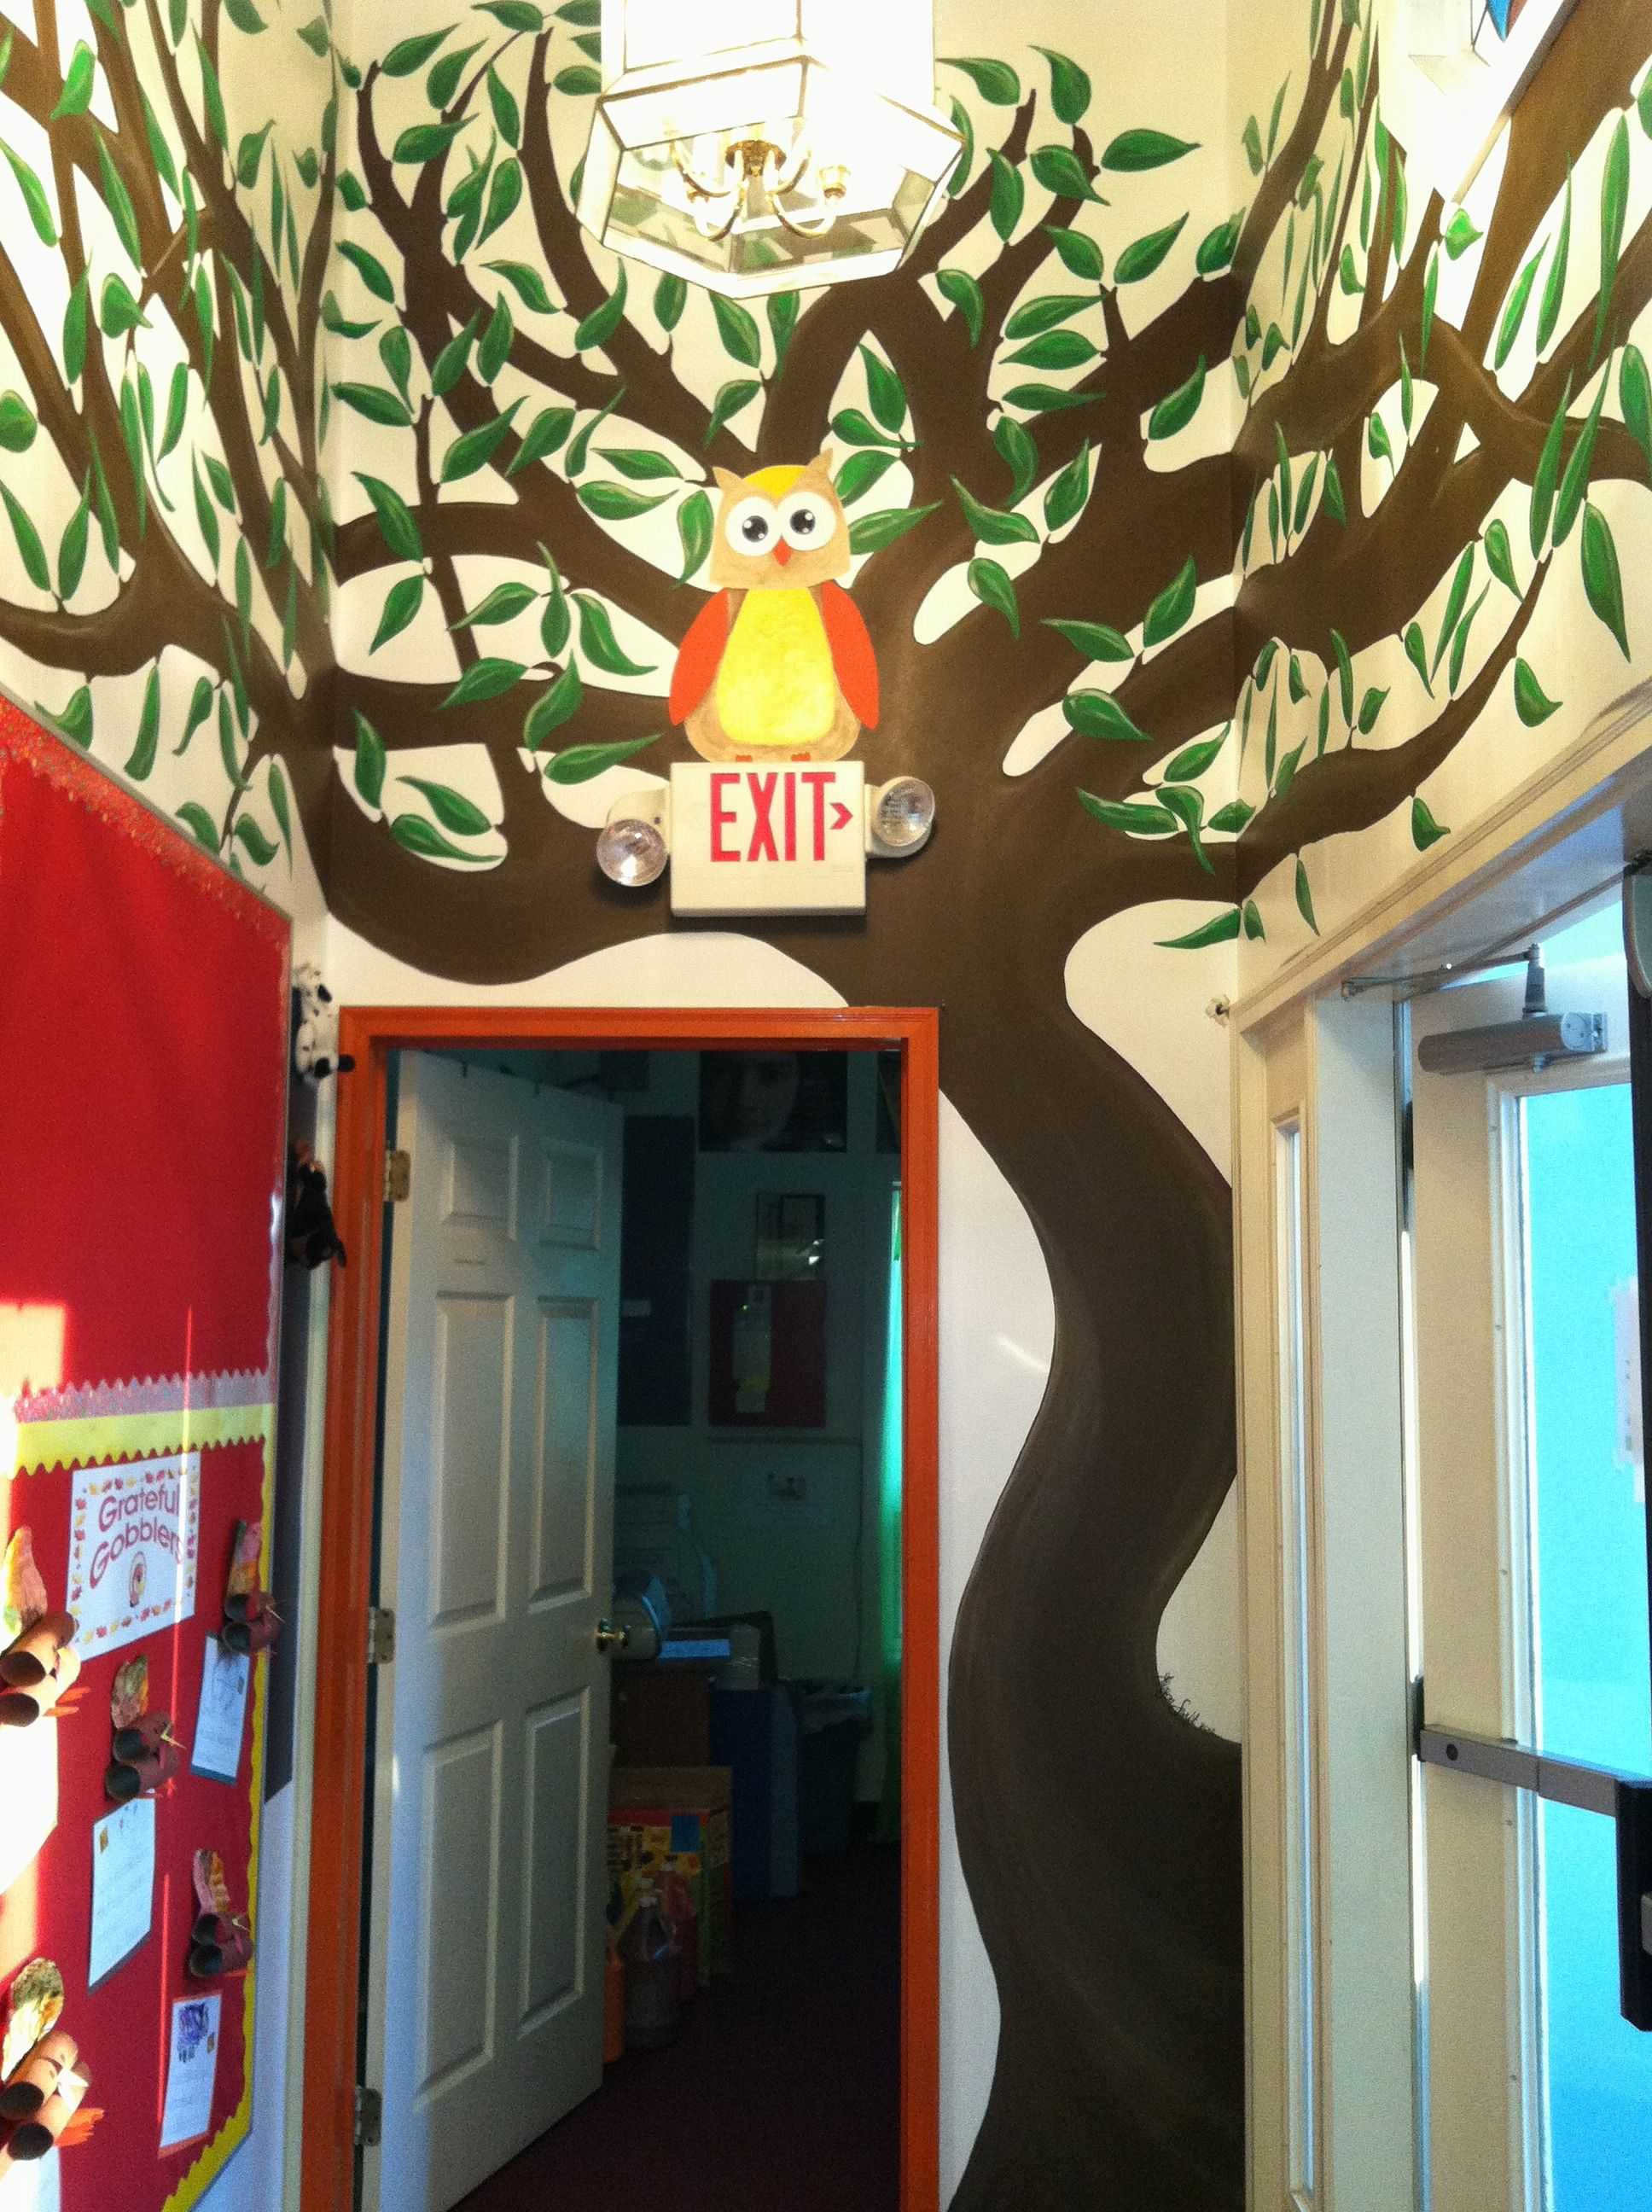 Custom Designed And Painted Wall Mural Of Owl In Tree For